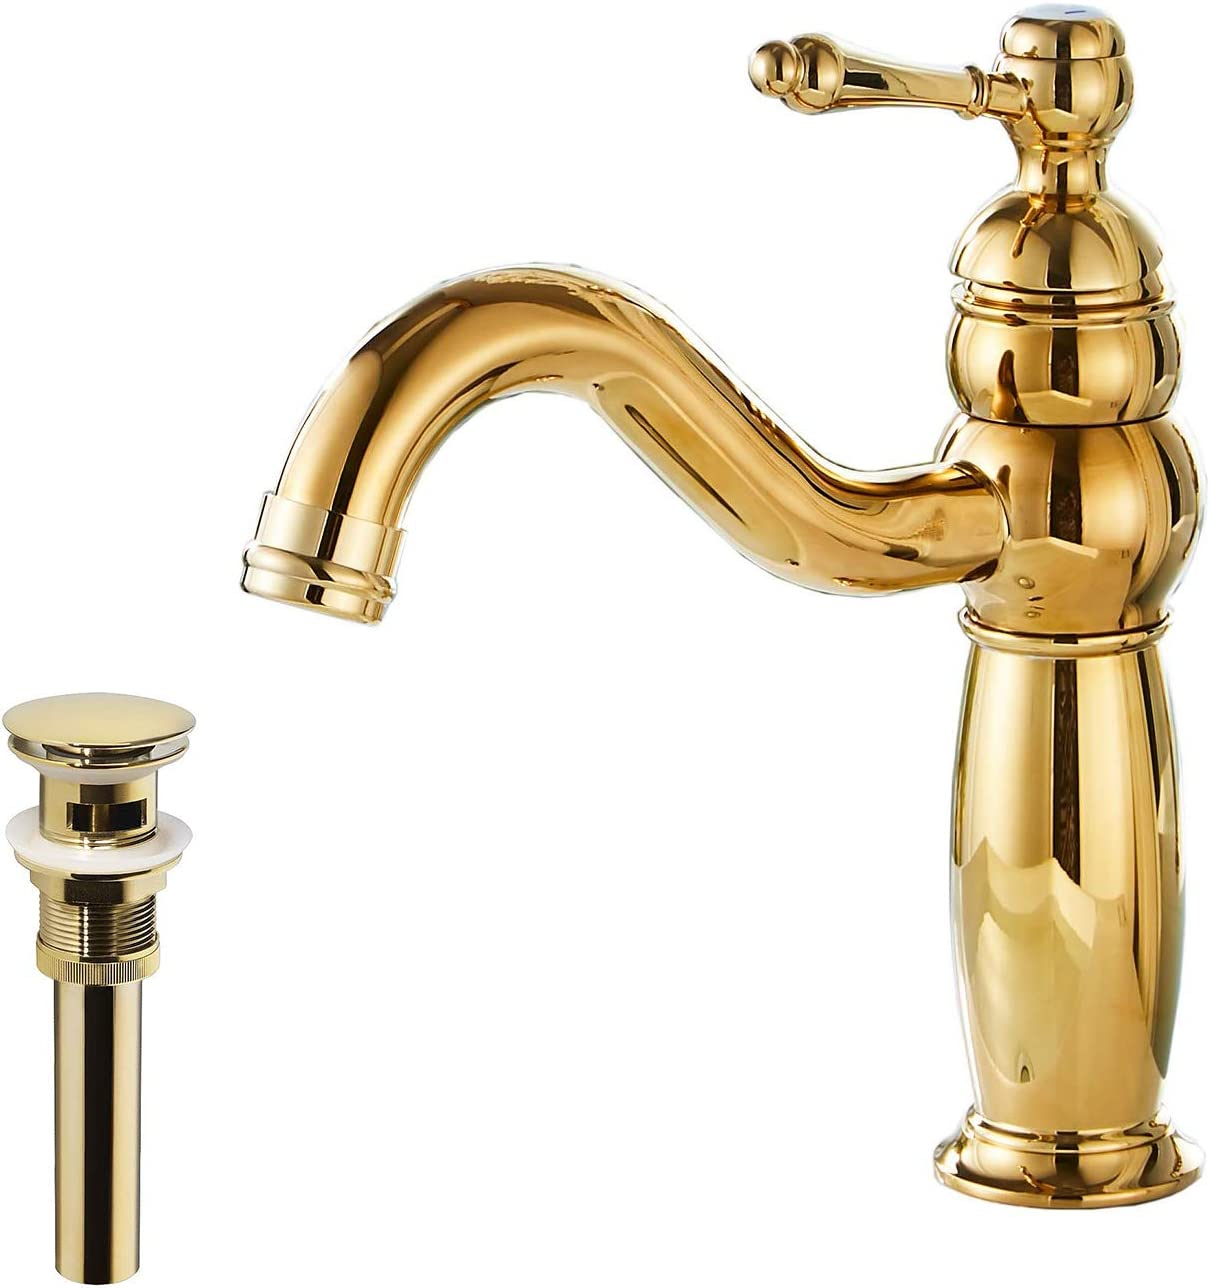 Gold Bathroom Sink Faucet Single Handle One Hole Stainless Steel Brass Mixer Tap